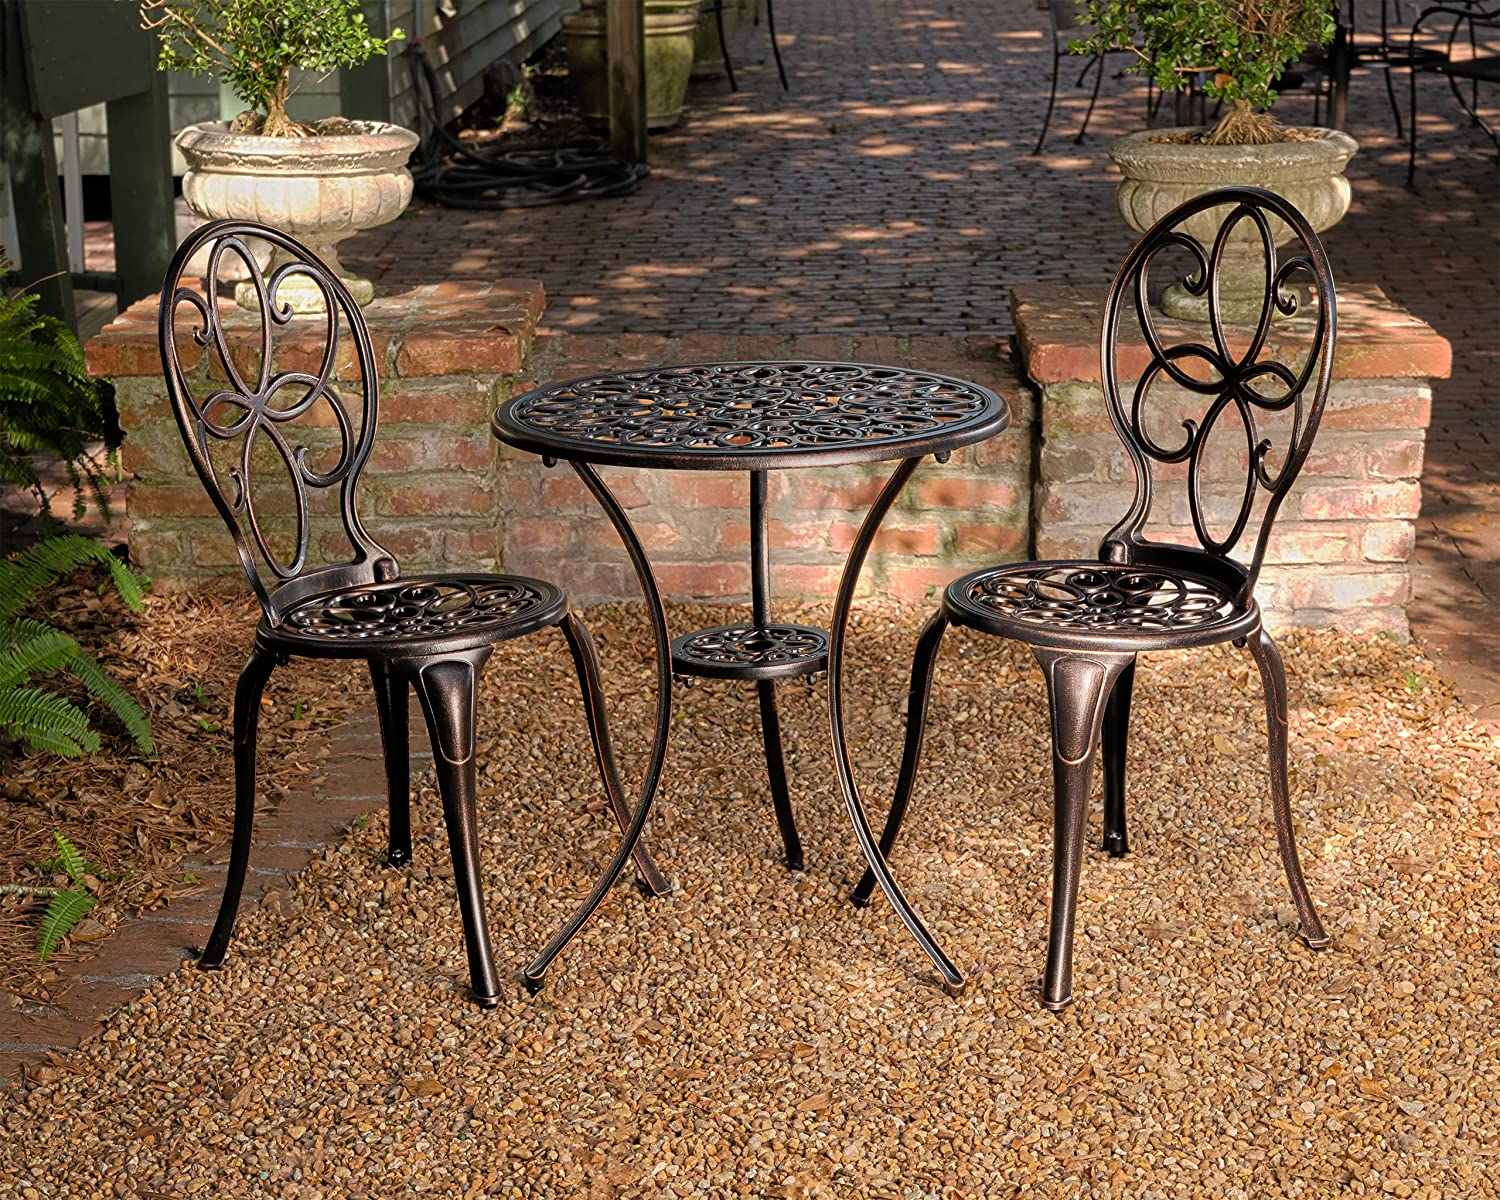 Patio Sense 61490 Arria Bistro Table And Chairs Set